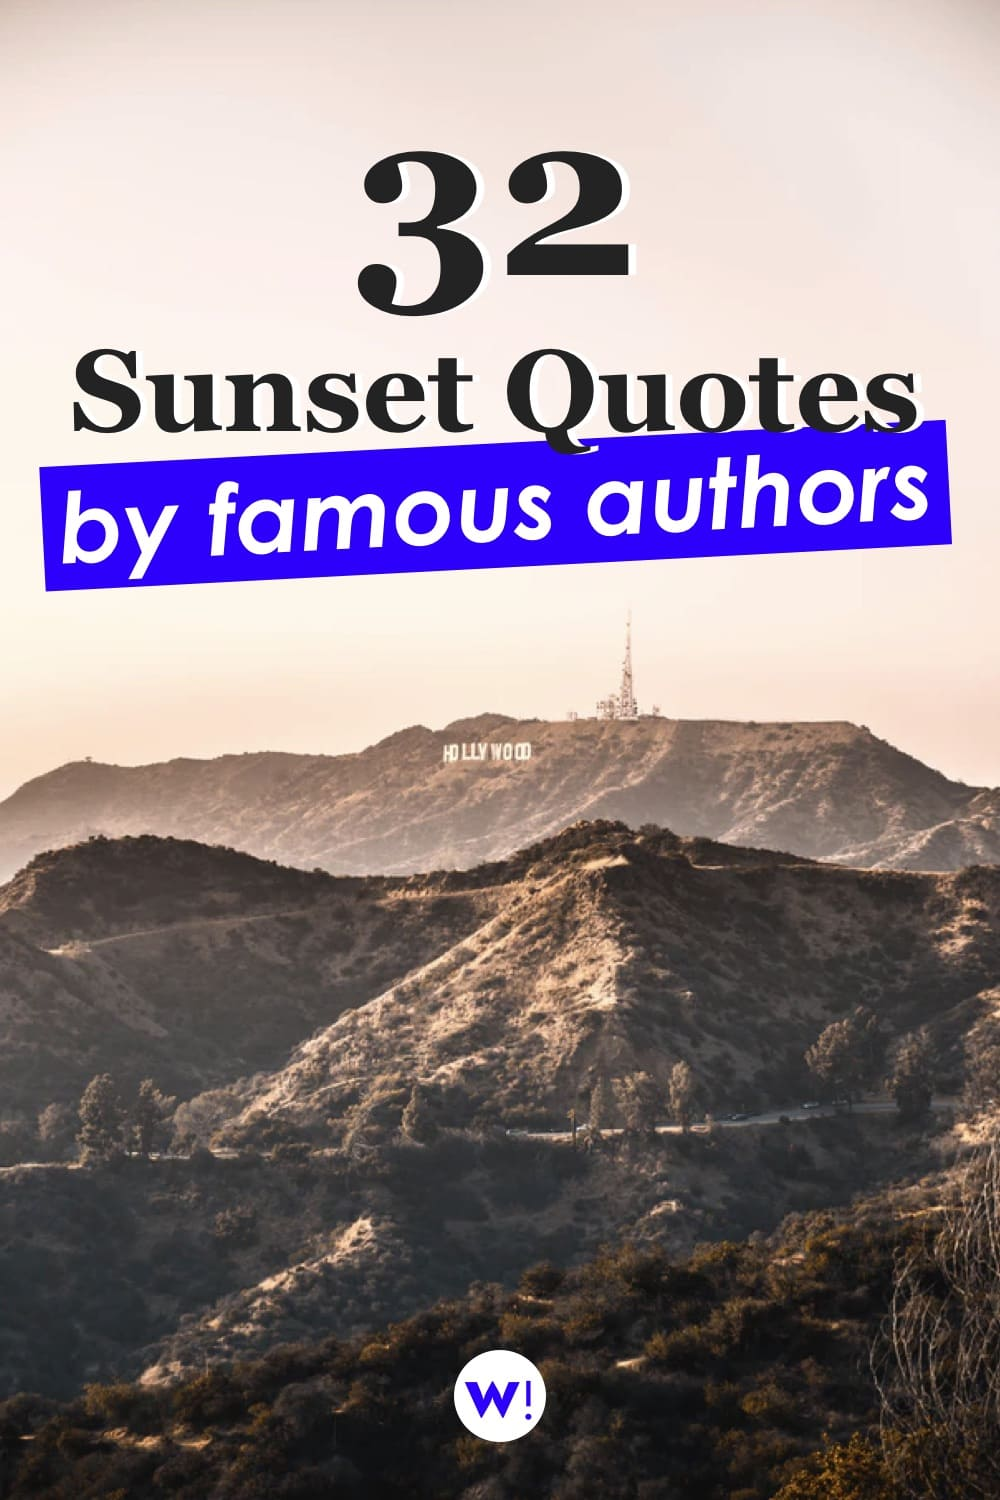 Did you know famous people talk about sunset? Yep, pretty much like you and I. Victor Hugo? He sure did. Shakespeare? Yep. Actor Chris Evans? You bet he did. Find over 30 of these famous sunset quotes! famous quotes inspirational |famous sunset quotes | famous quotes about sunset